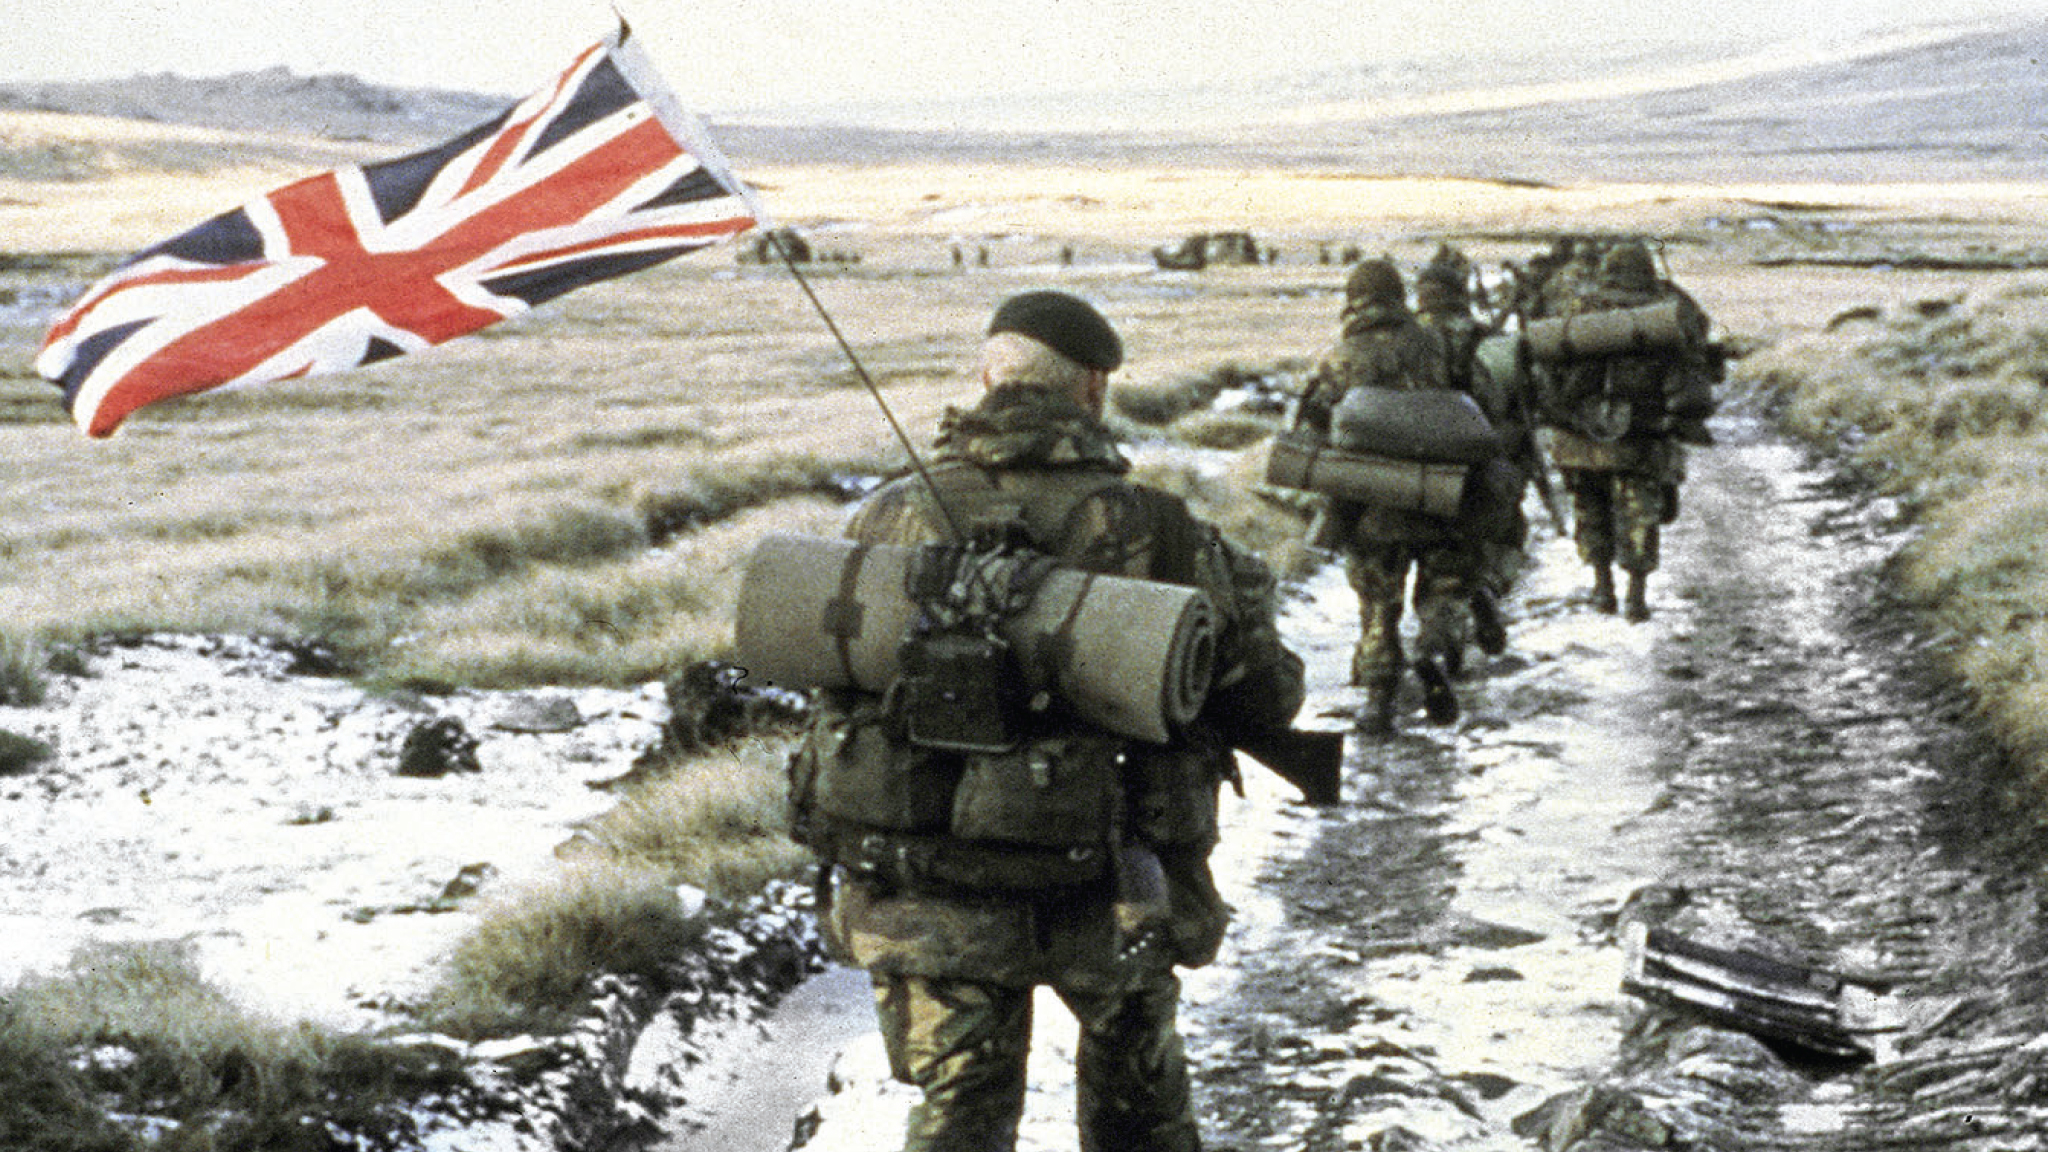 Union Jack Iphone Wallpaper Reagan Pleaded With Thatcher Not To Retake Falklands